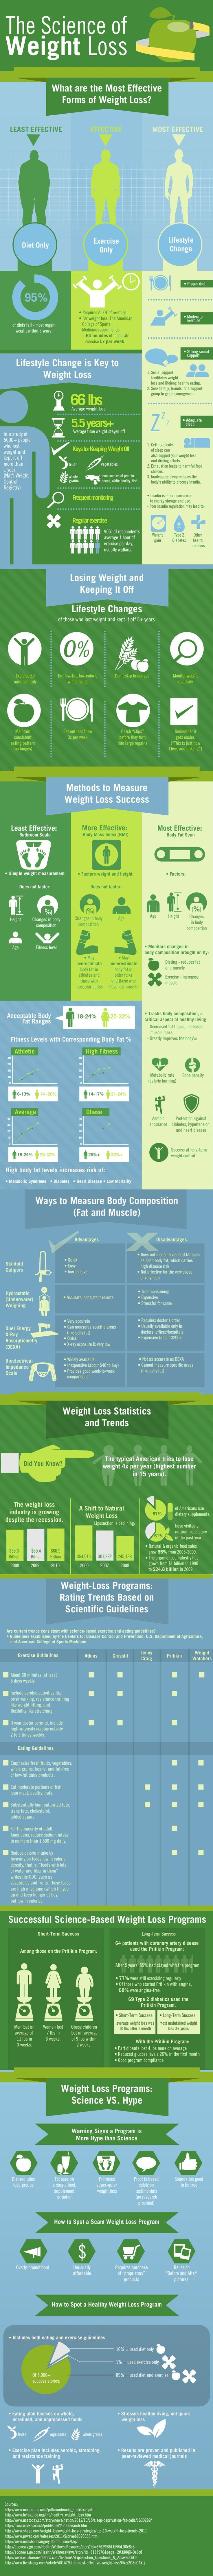 These 10 Graphs to Help You Lose Weight are THE BEST! I already STARTED LOSING WEIGHT as soon as I started following some of them! The results are AMAZING! I'm so happy I found this! Definitely pinning for later!